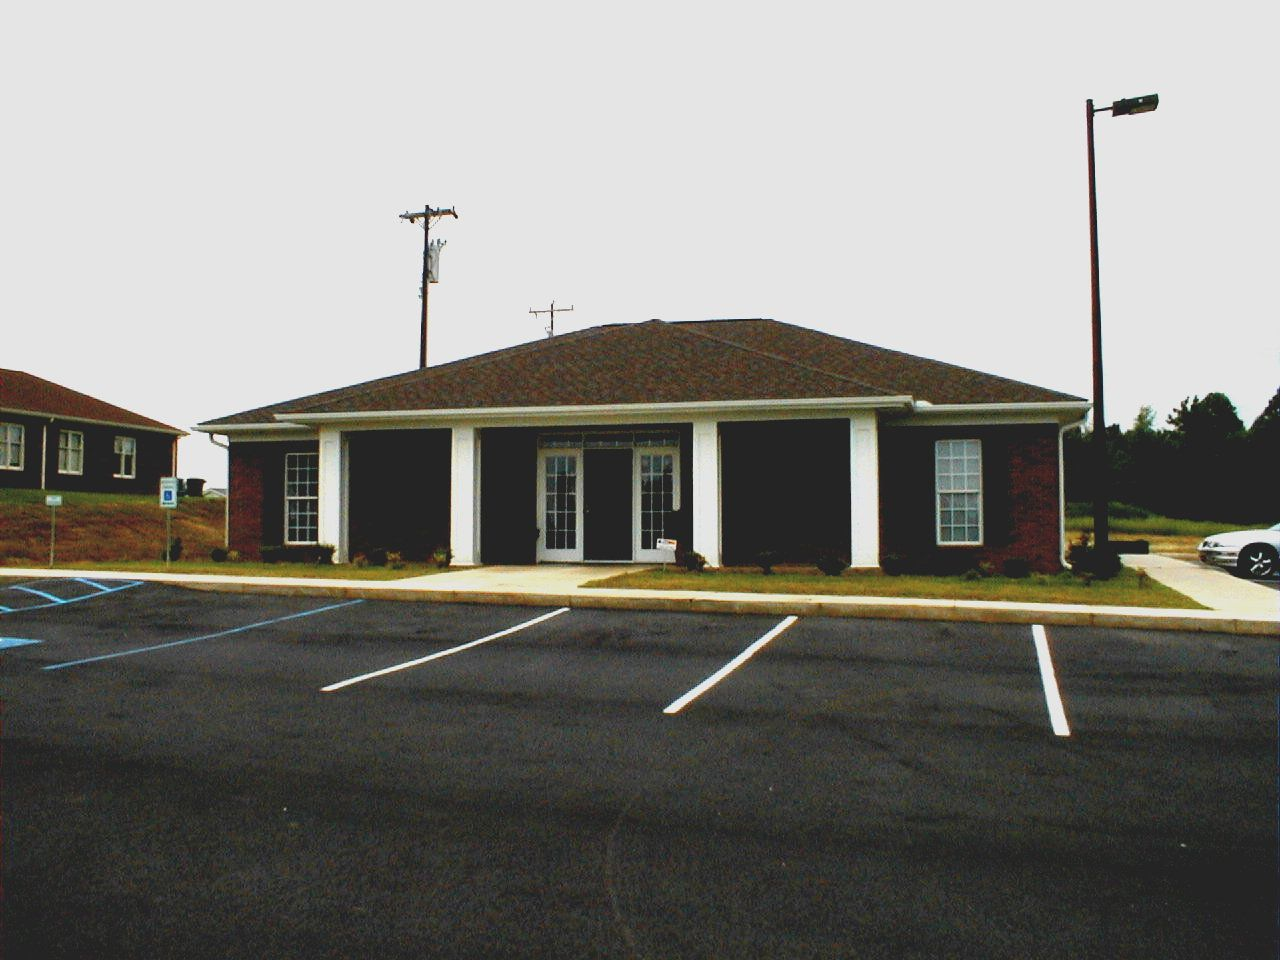 Good Shepherd Free Medical Clinic of Laurens County